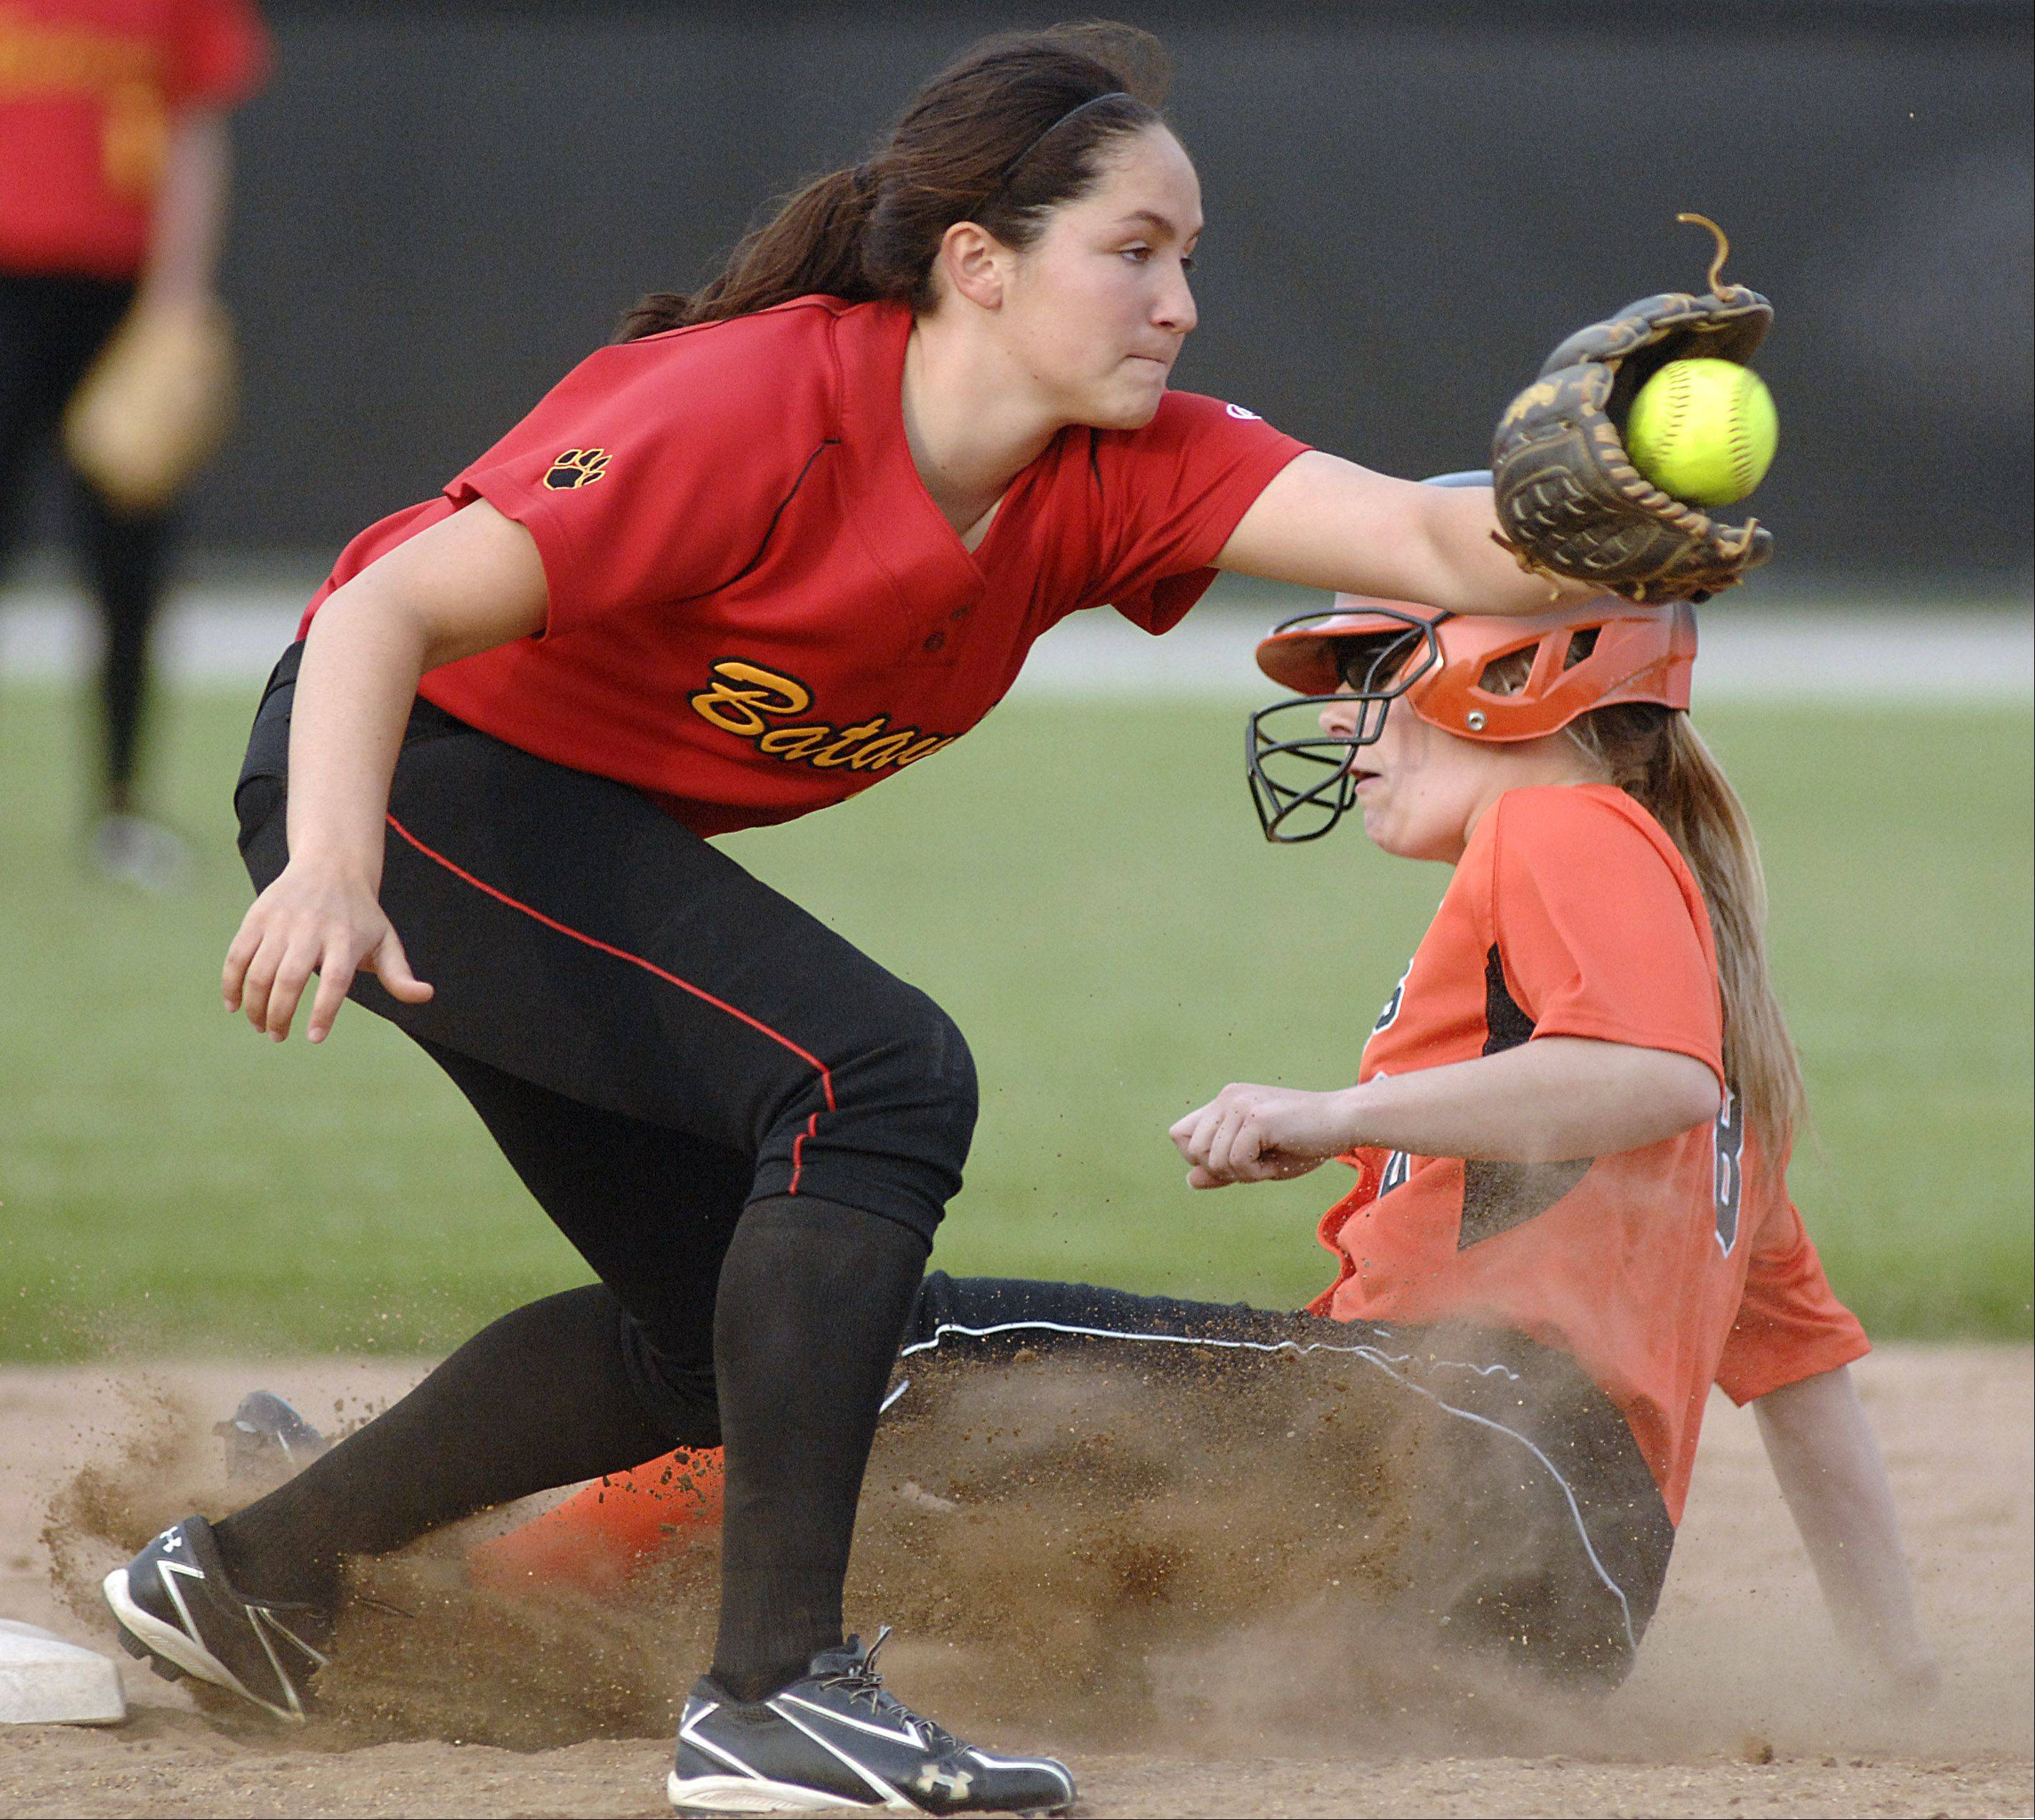 St. Charles East's Sarah Collalti is safe on second base from Batavia's Sami Villarreal in the sixth inning on Wednesday, April 25.